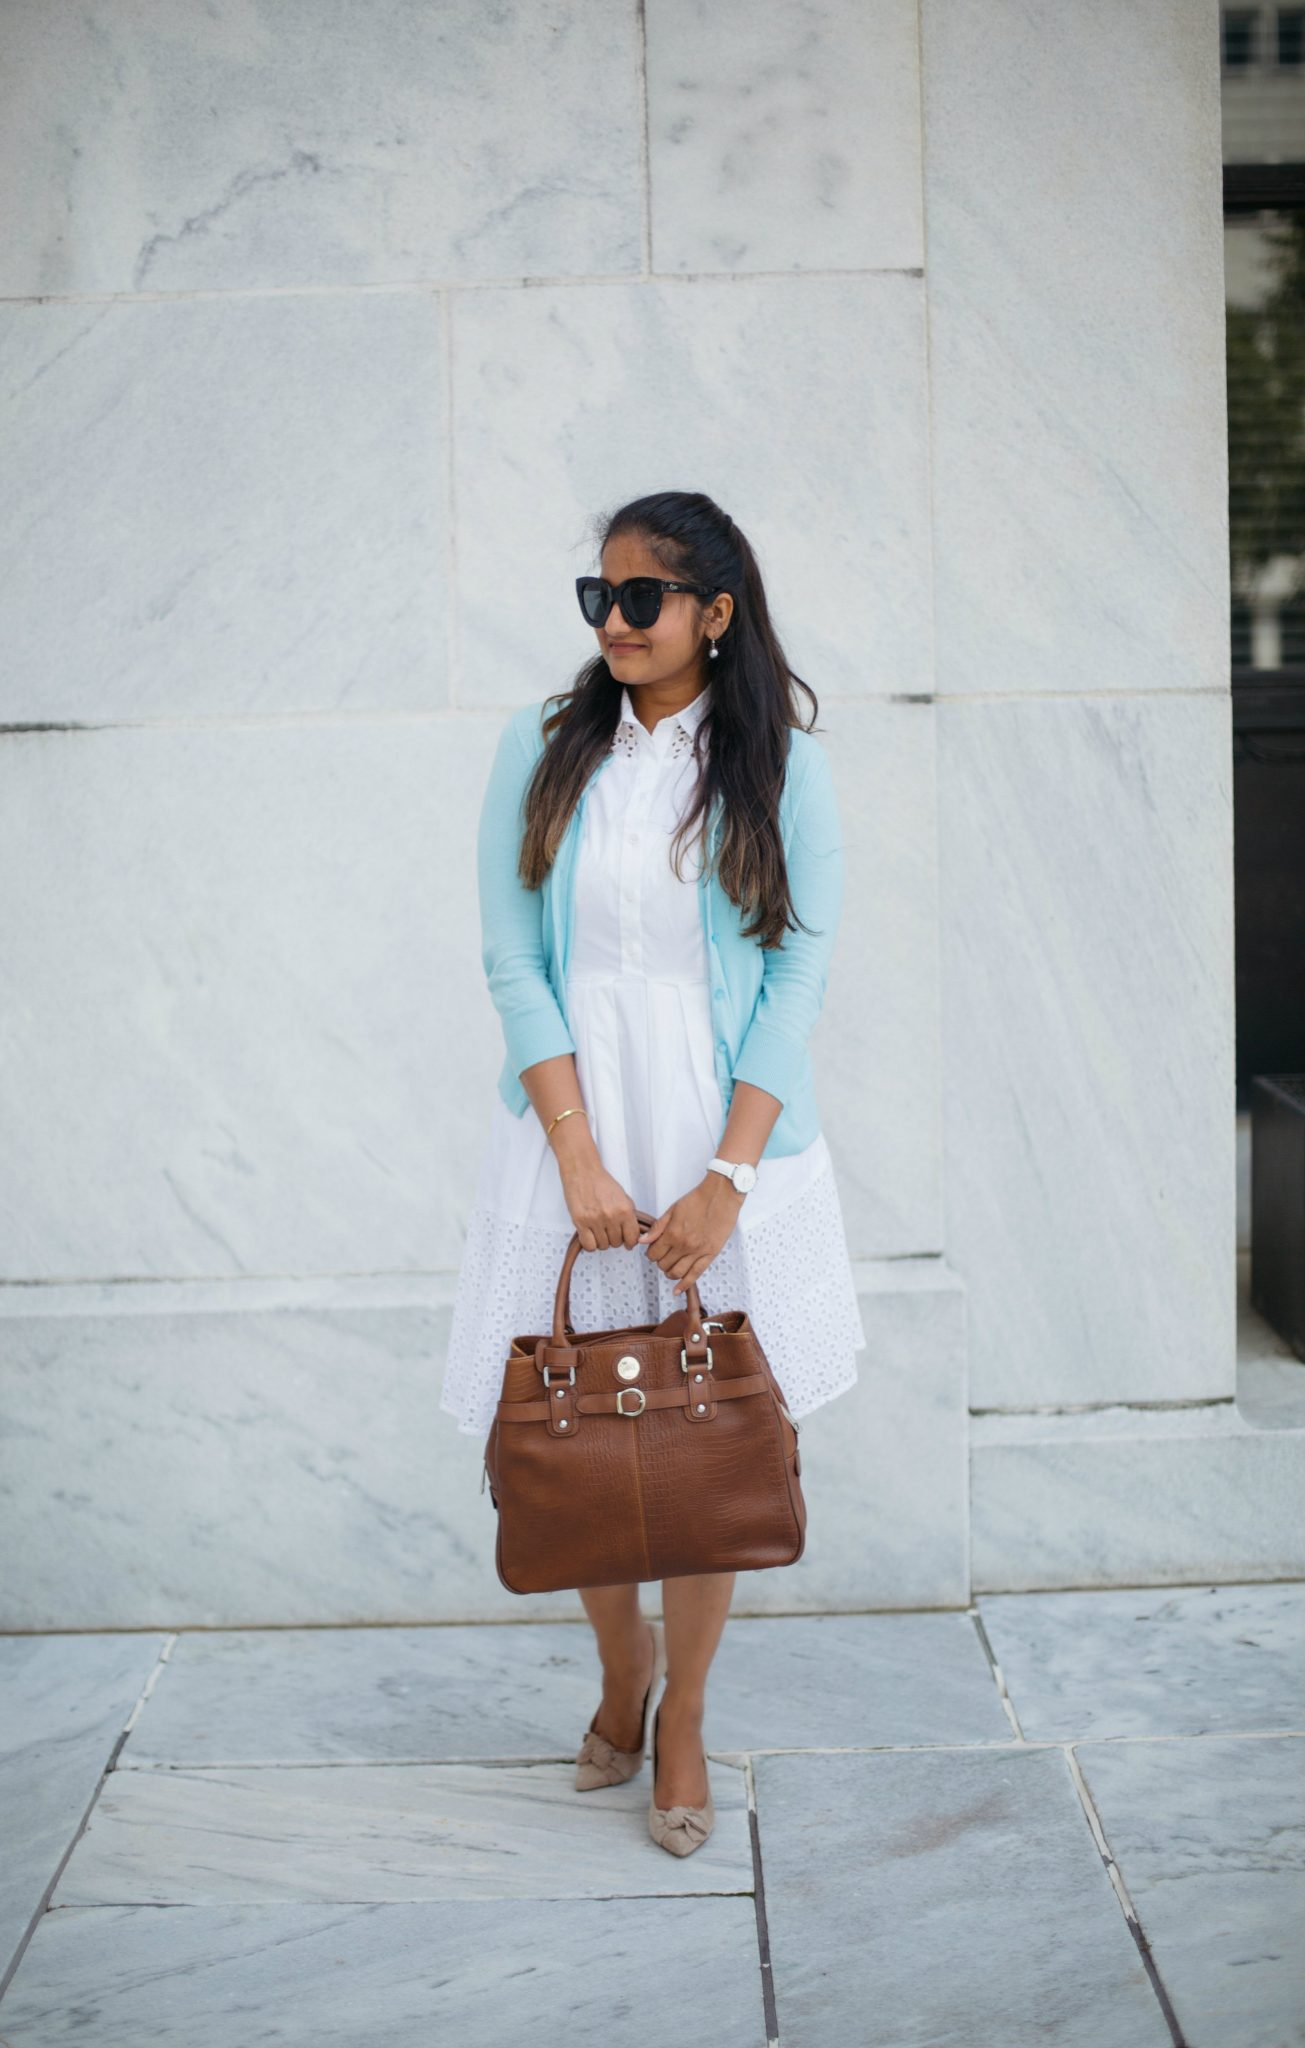 how-to-wear-light-blue-cardigan-with-white-to-work-by-dreaming-loud-6 - J.Crew factory light blue cardigan styled by popular Ohio modest fashion blogger, Dreaming Loud